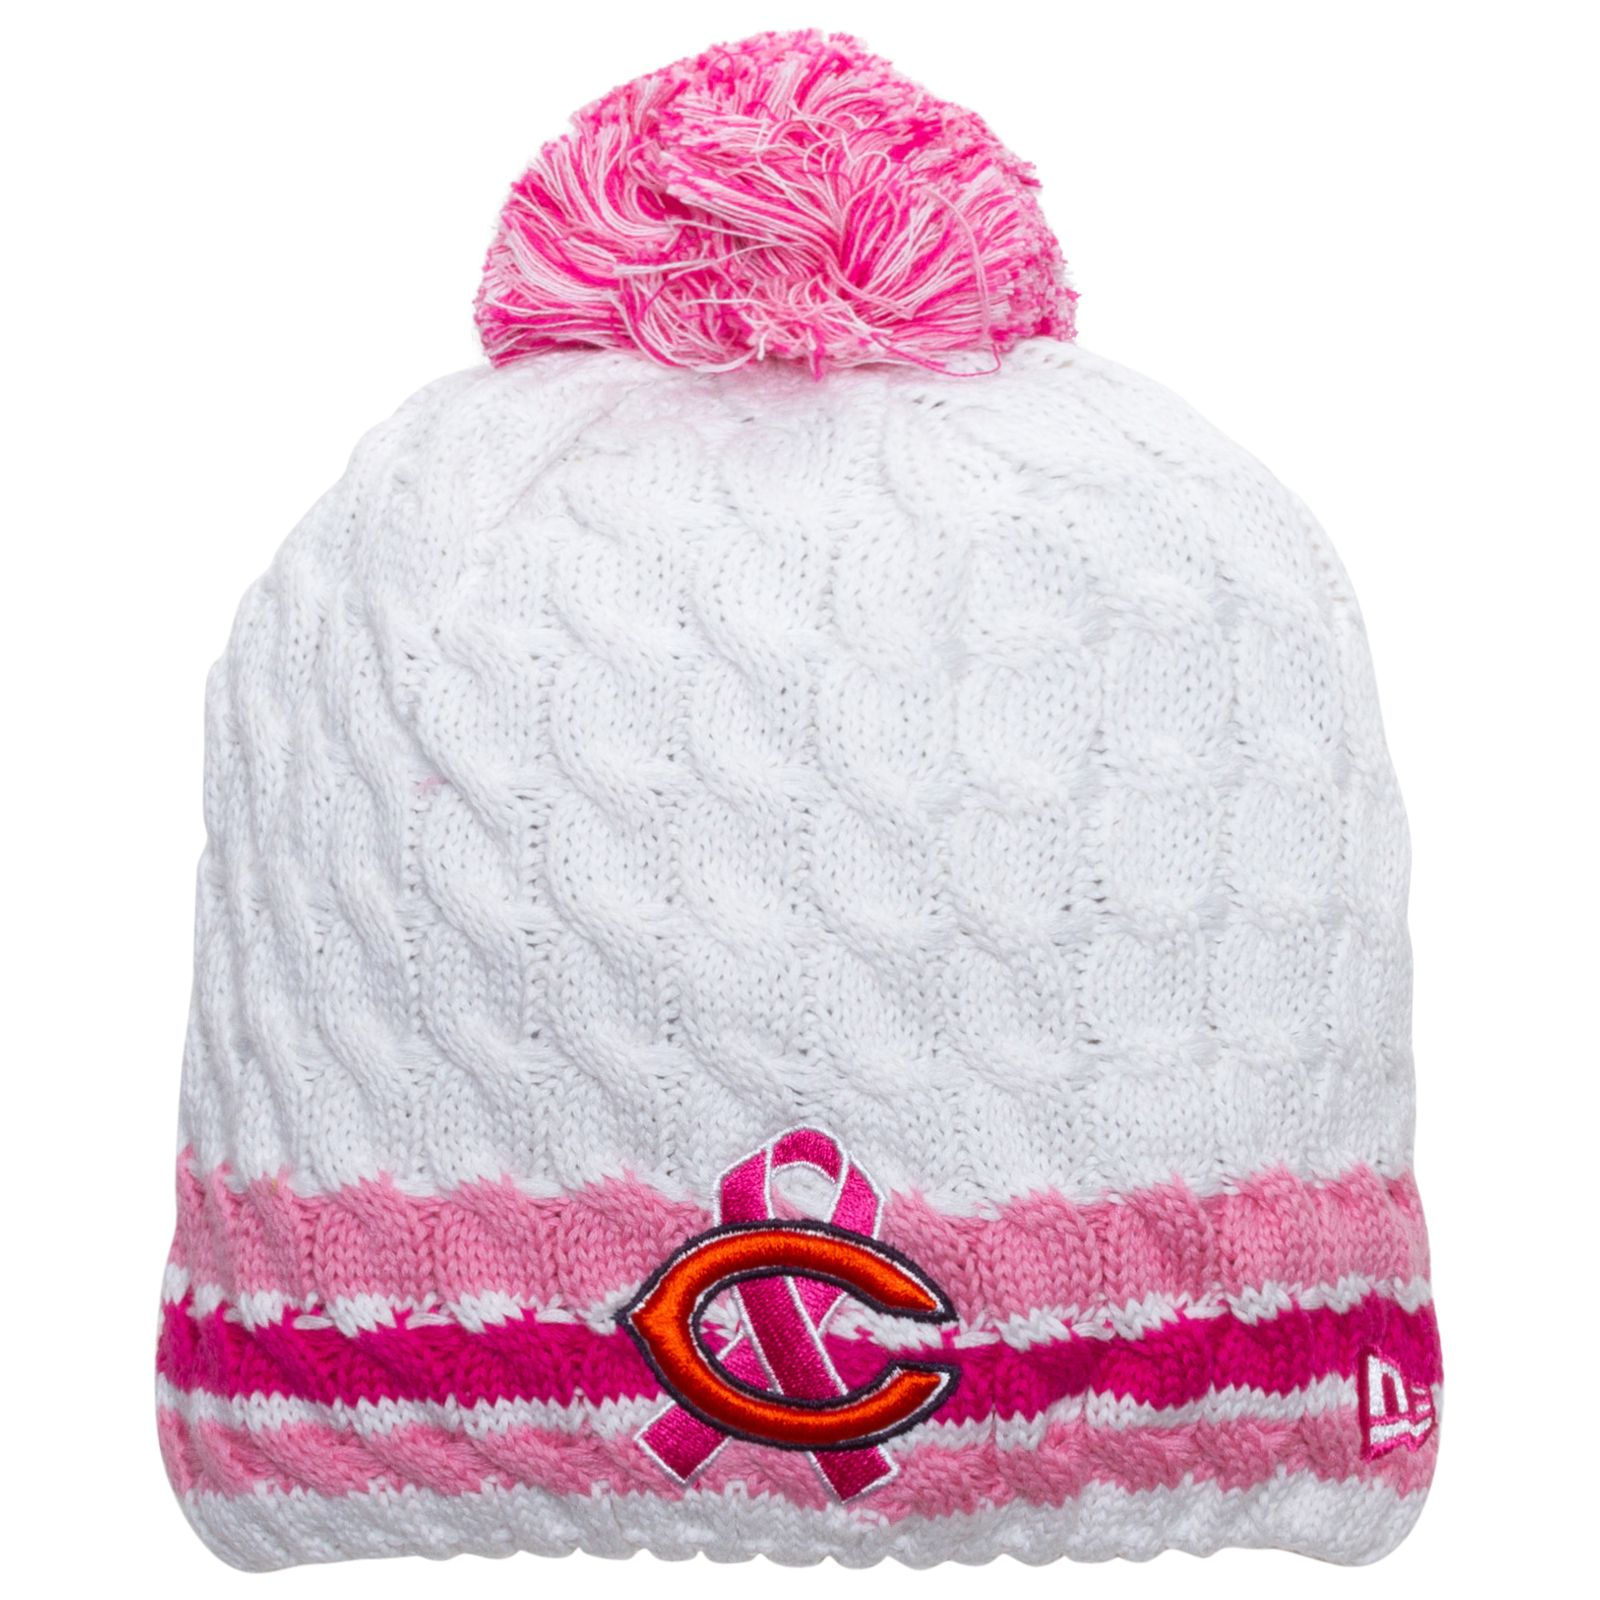 22675c0b697 Chicago Bears White and Pink 2013 Breast Cancer Awareness Knit Hat by New  Era  Chicago  Bears  ChicagoBears